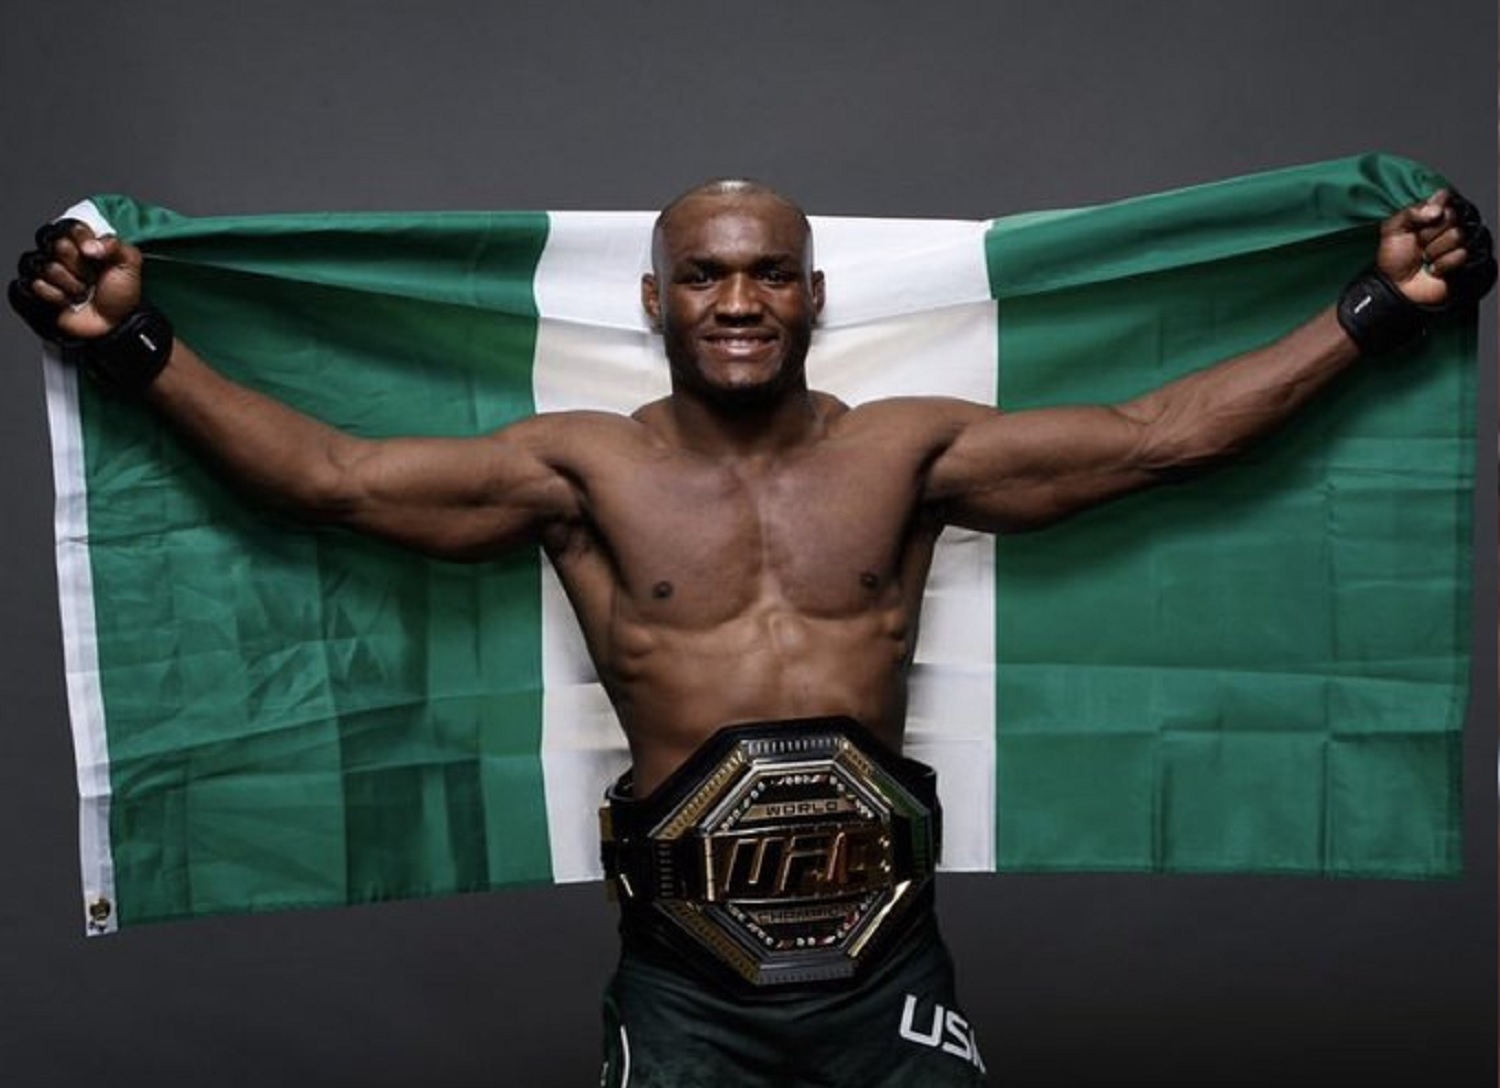 BREAKING: 'Nigerian Nightmare' Kamaru Usman suspended for six months